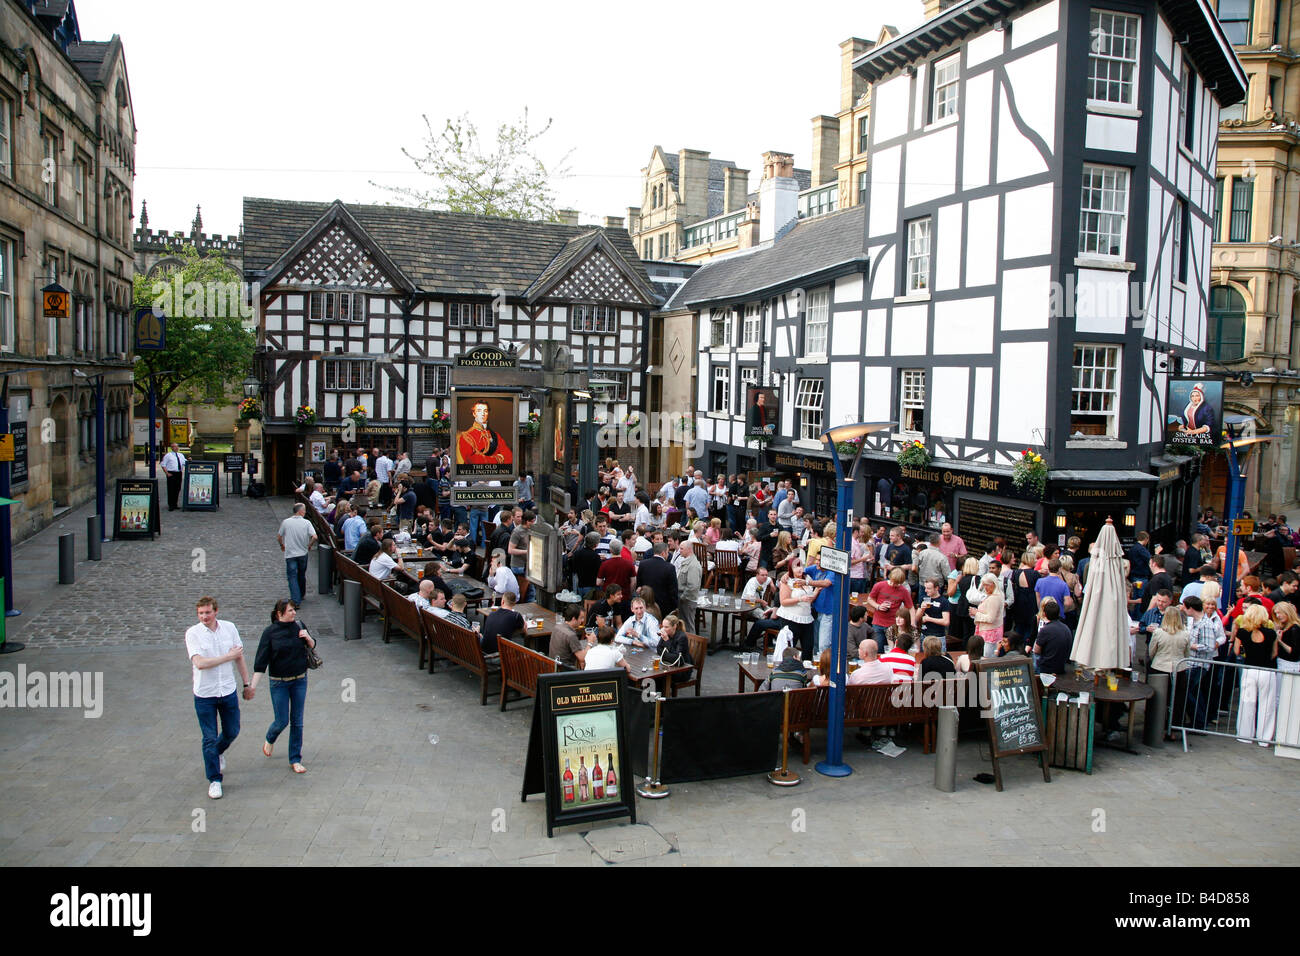 Aug 2008 - People at the Sinclairs Oyster Bar and the Wellington Inn restaurant Manchester England UK Stock Photo